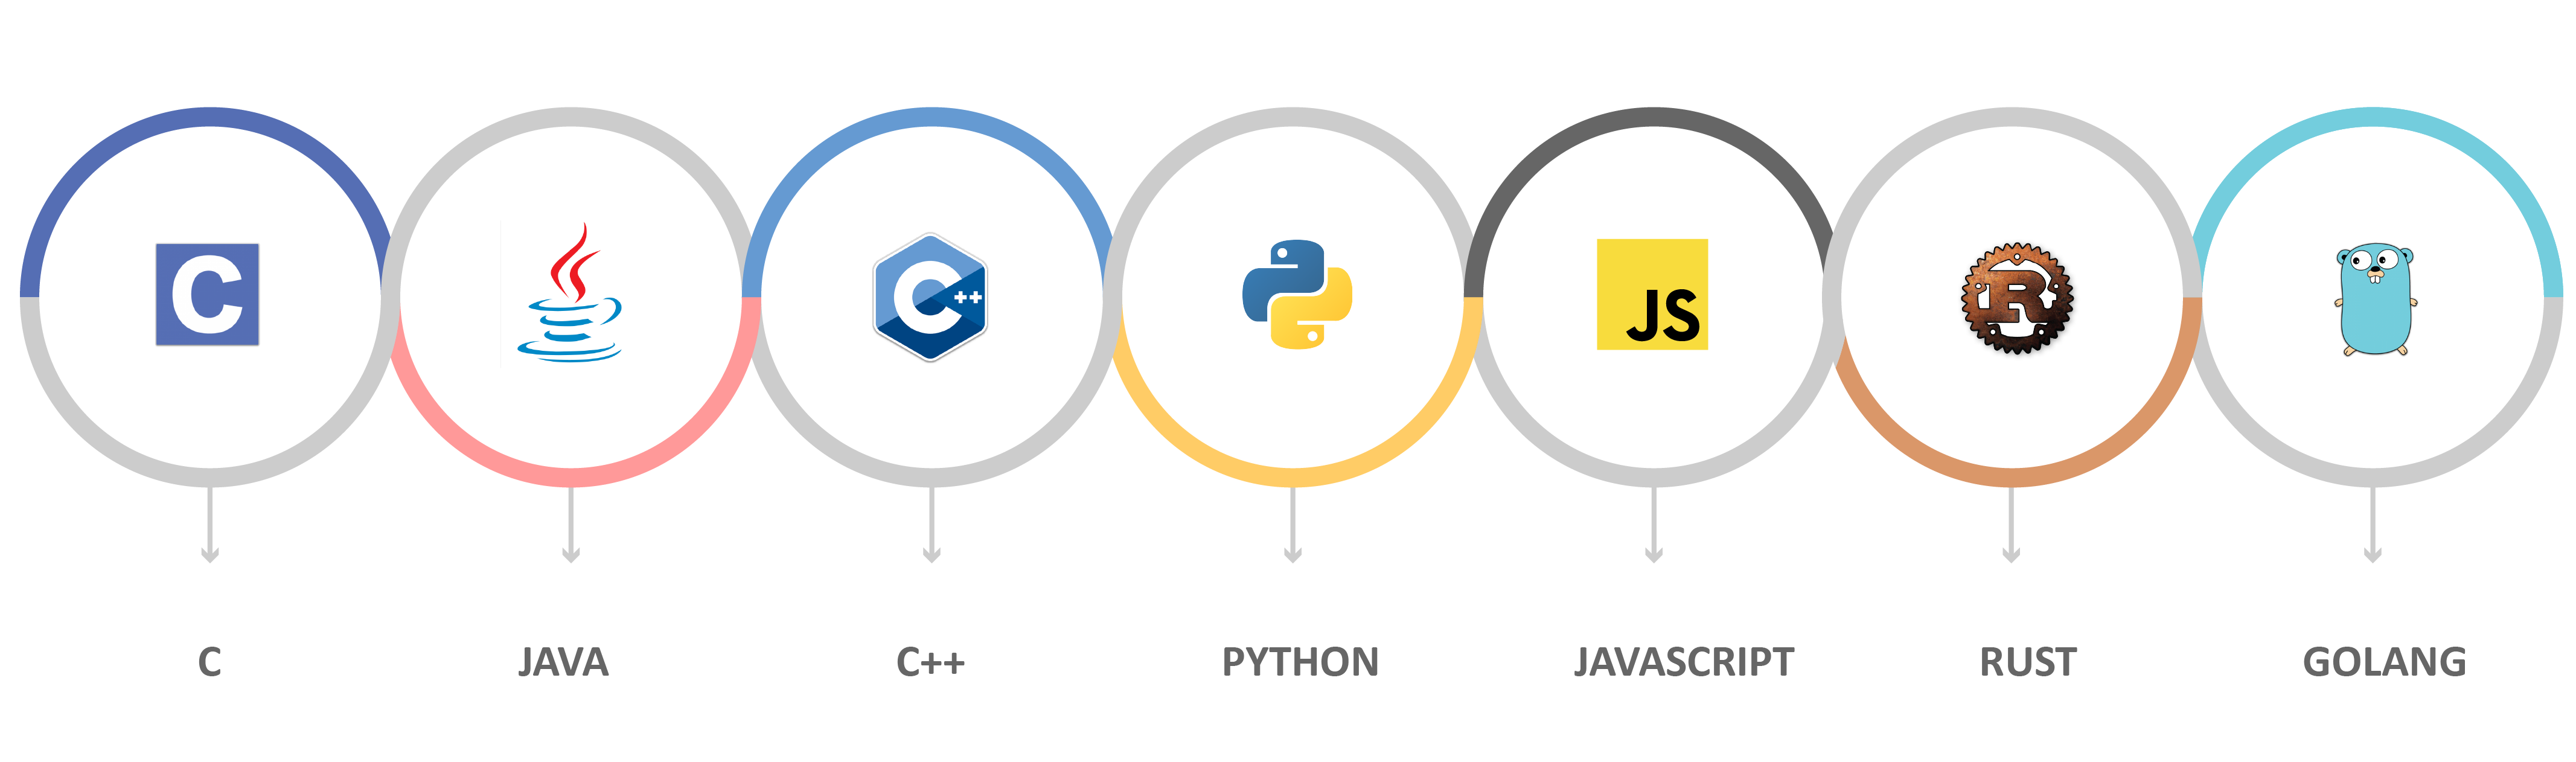 Top Programming Languages 2018 >> The Most In-Demand Programming Languages of 2018 – Lambda Security – Thoughts on software ...